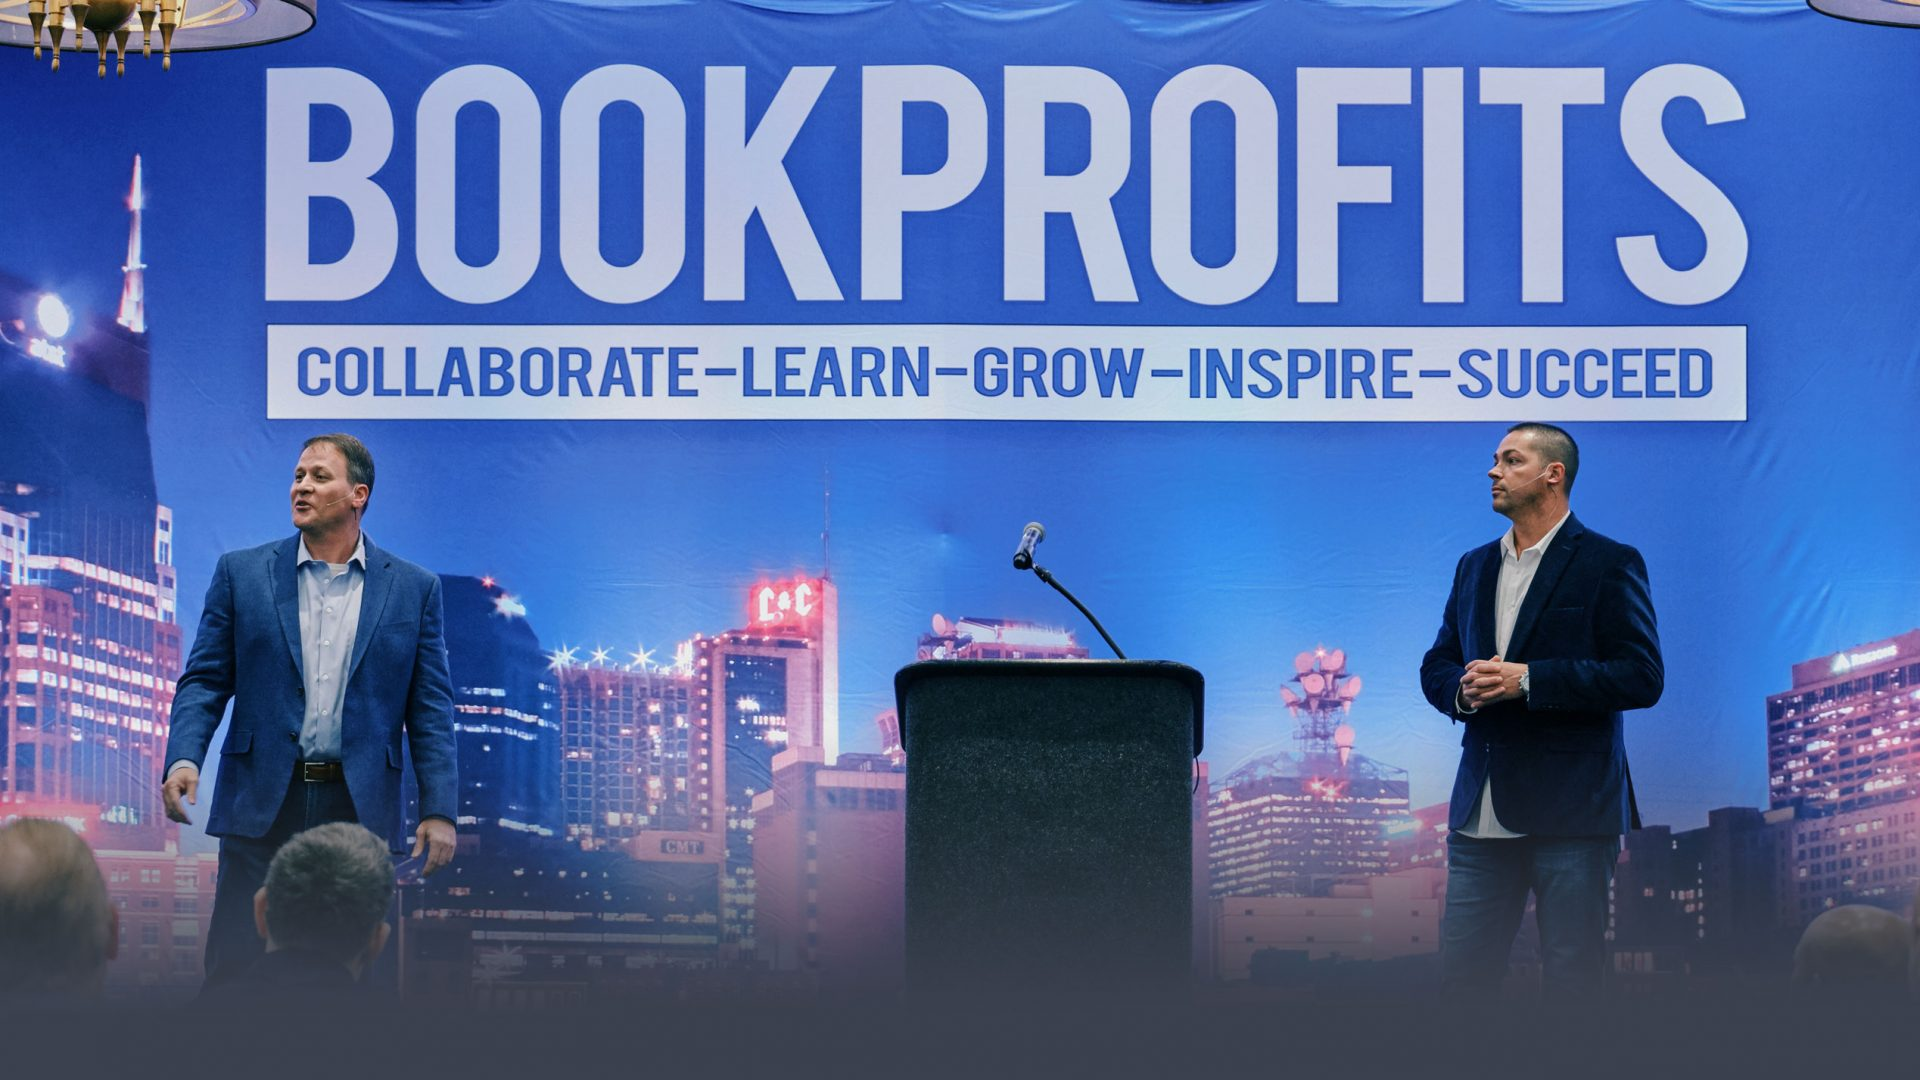 book-profits-bg-full1